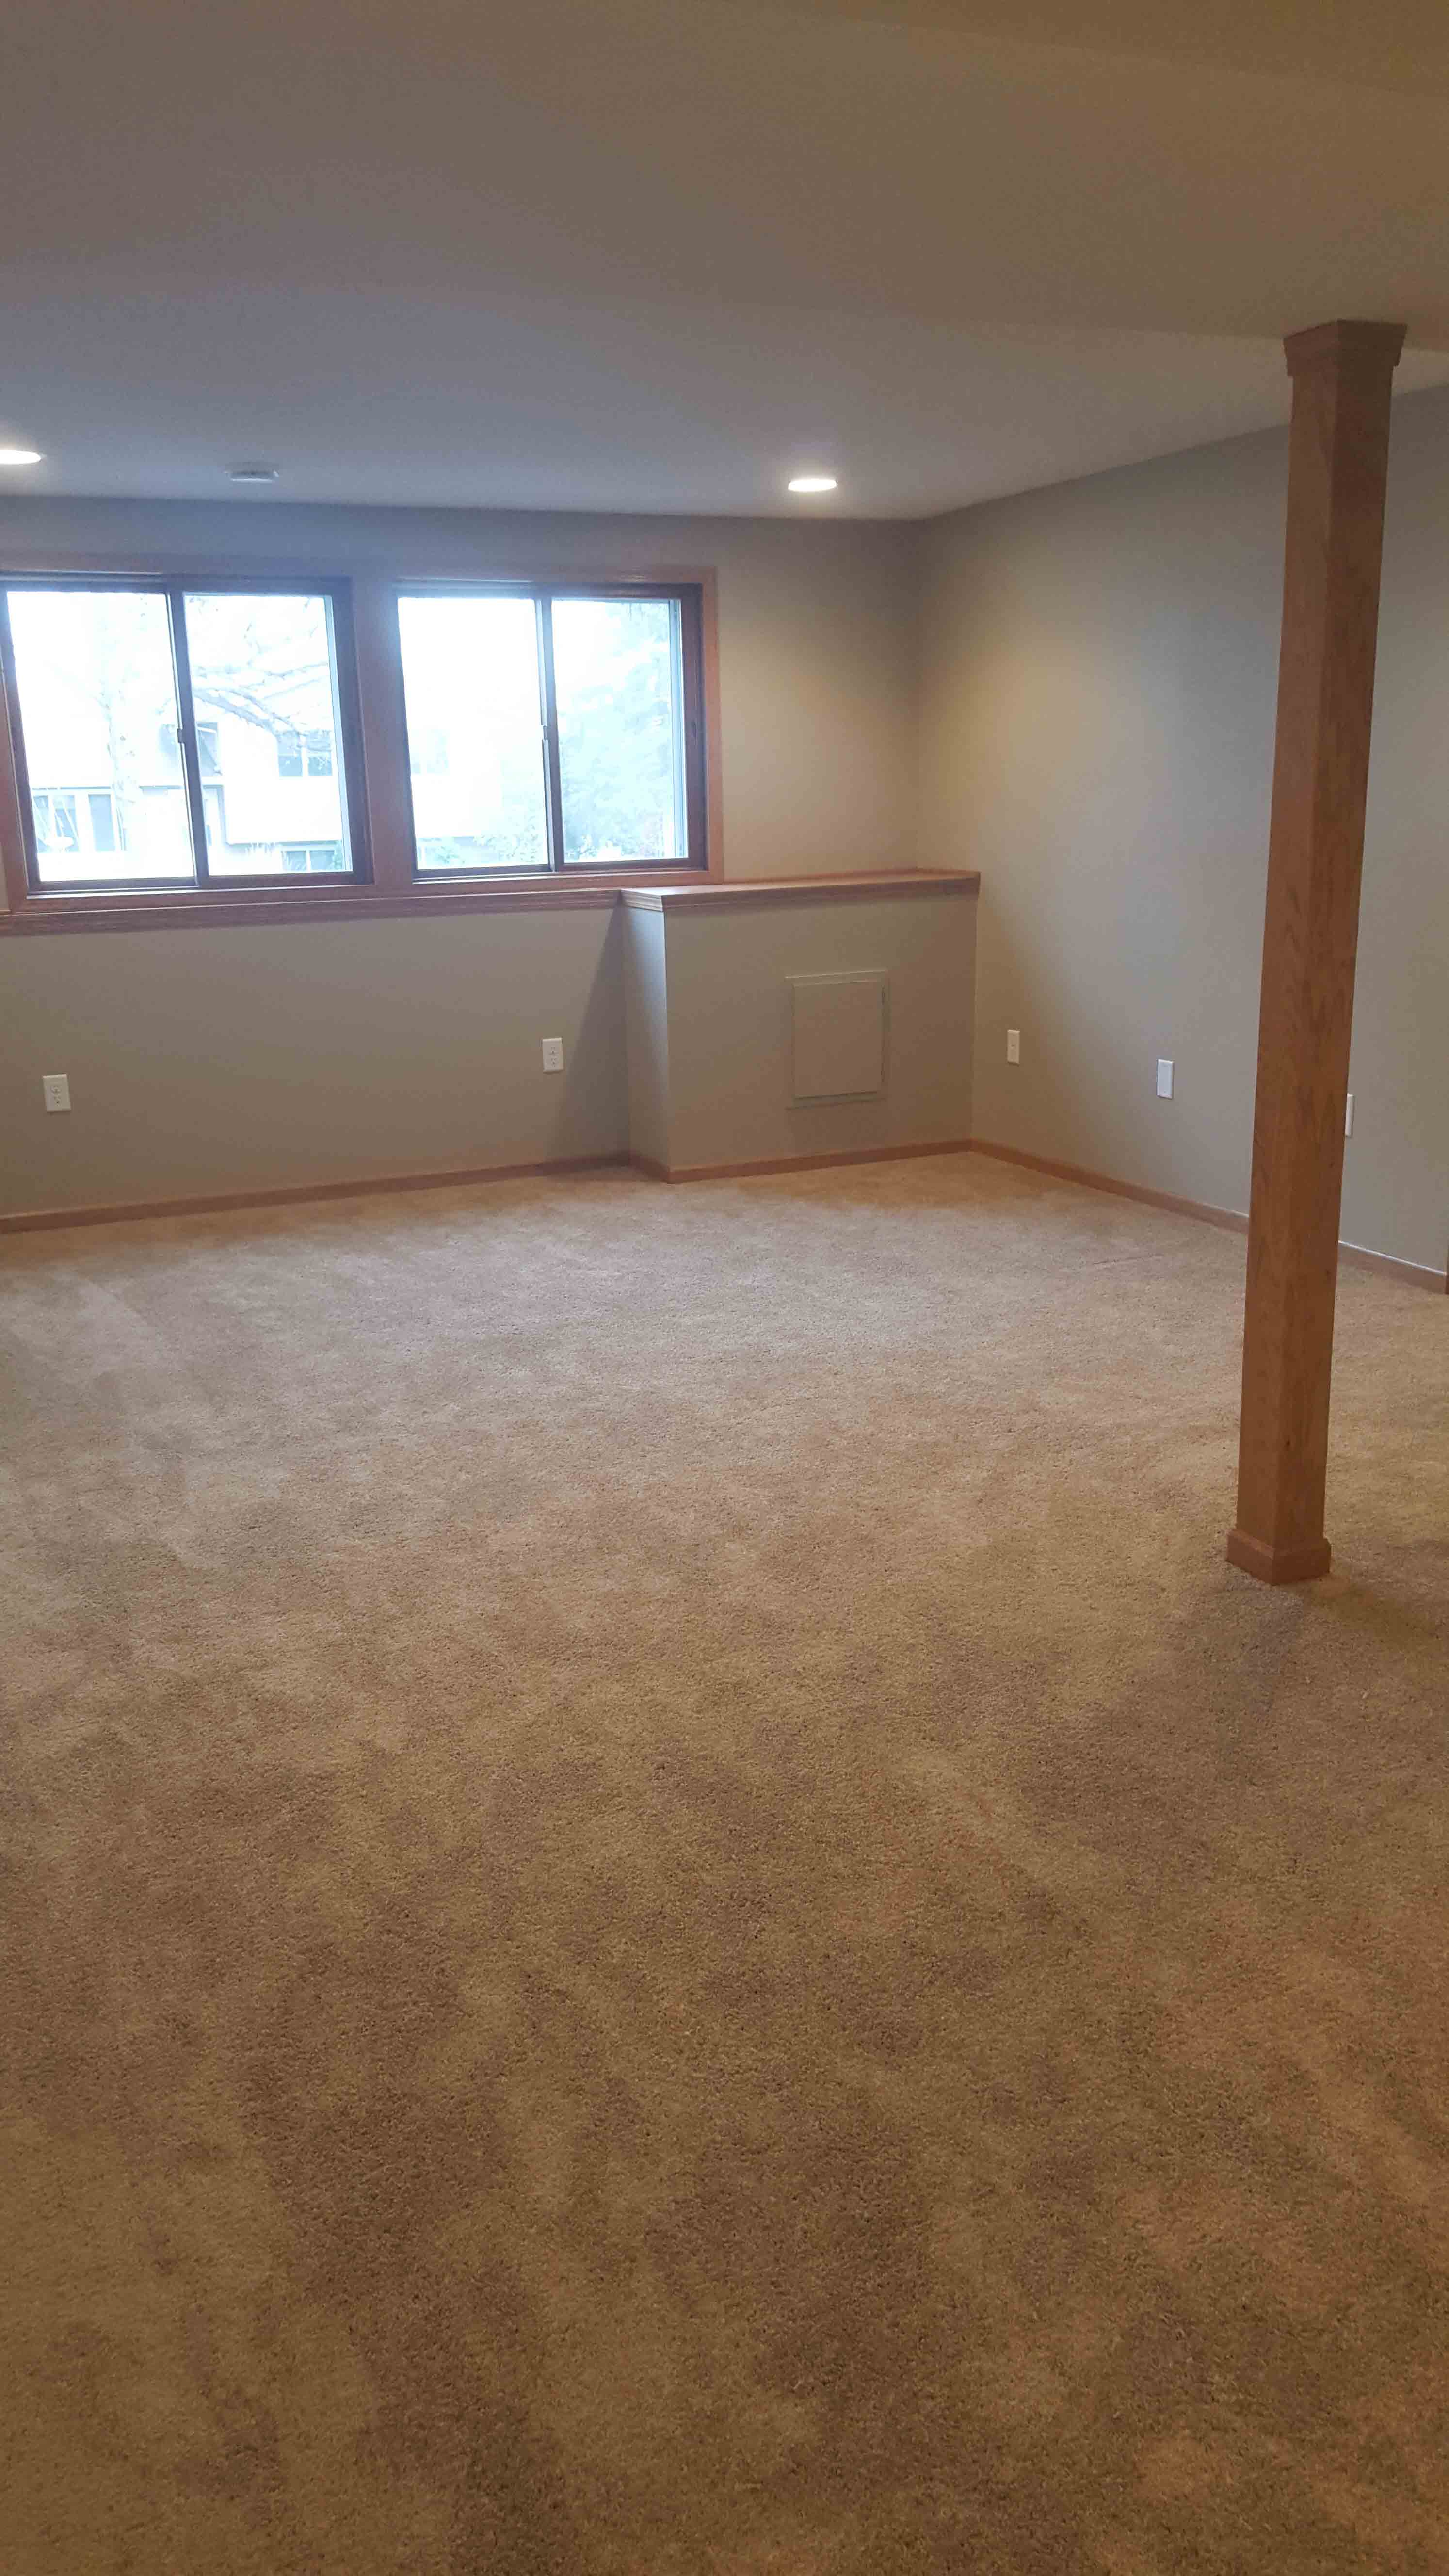 properties for rent lonsdale minnesota-10